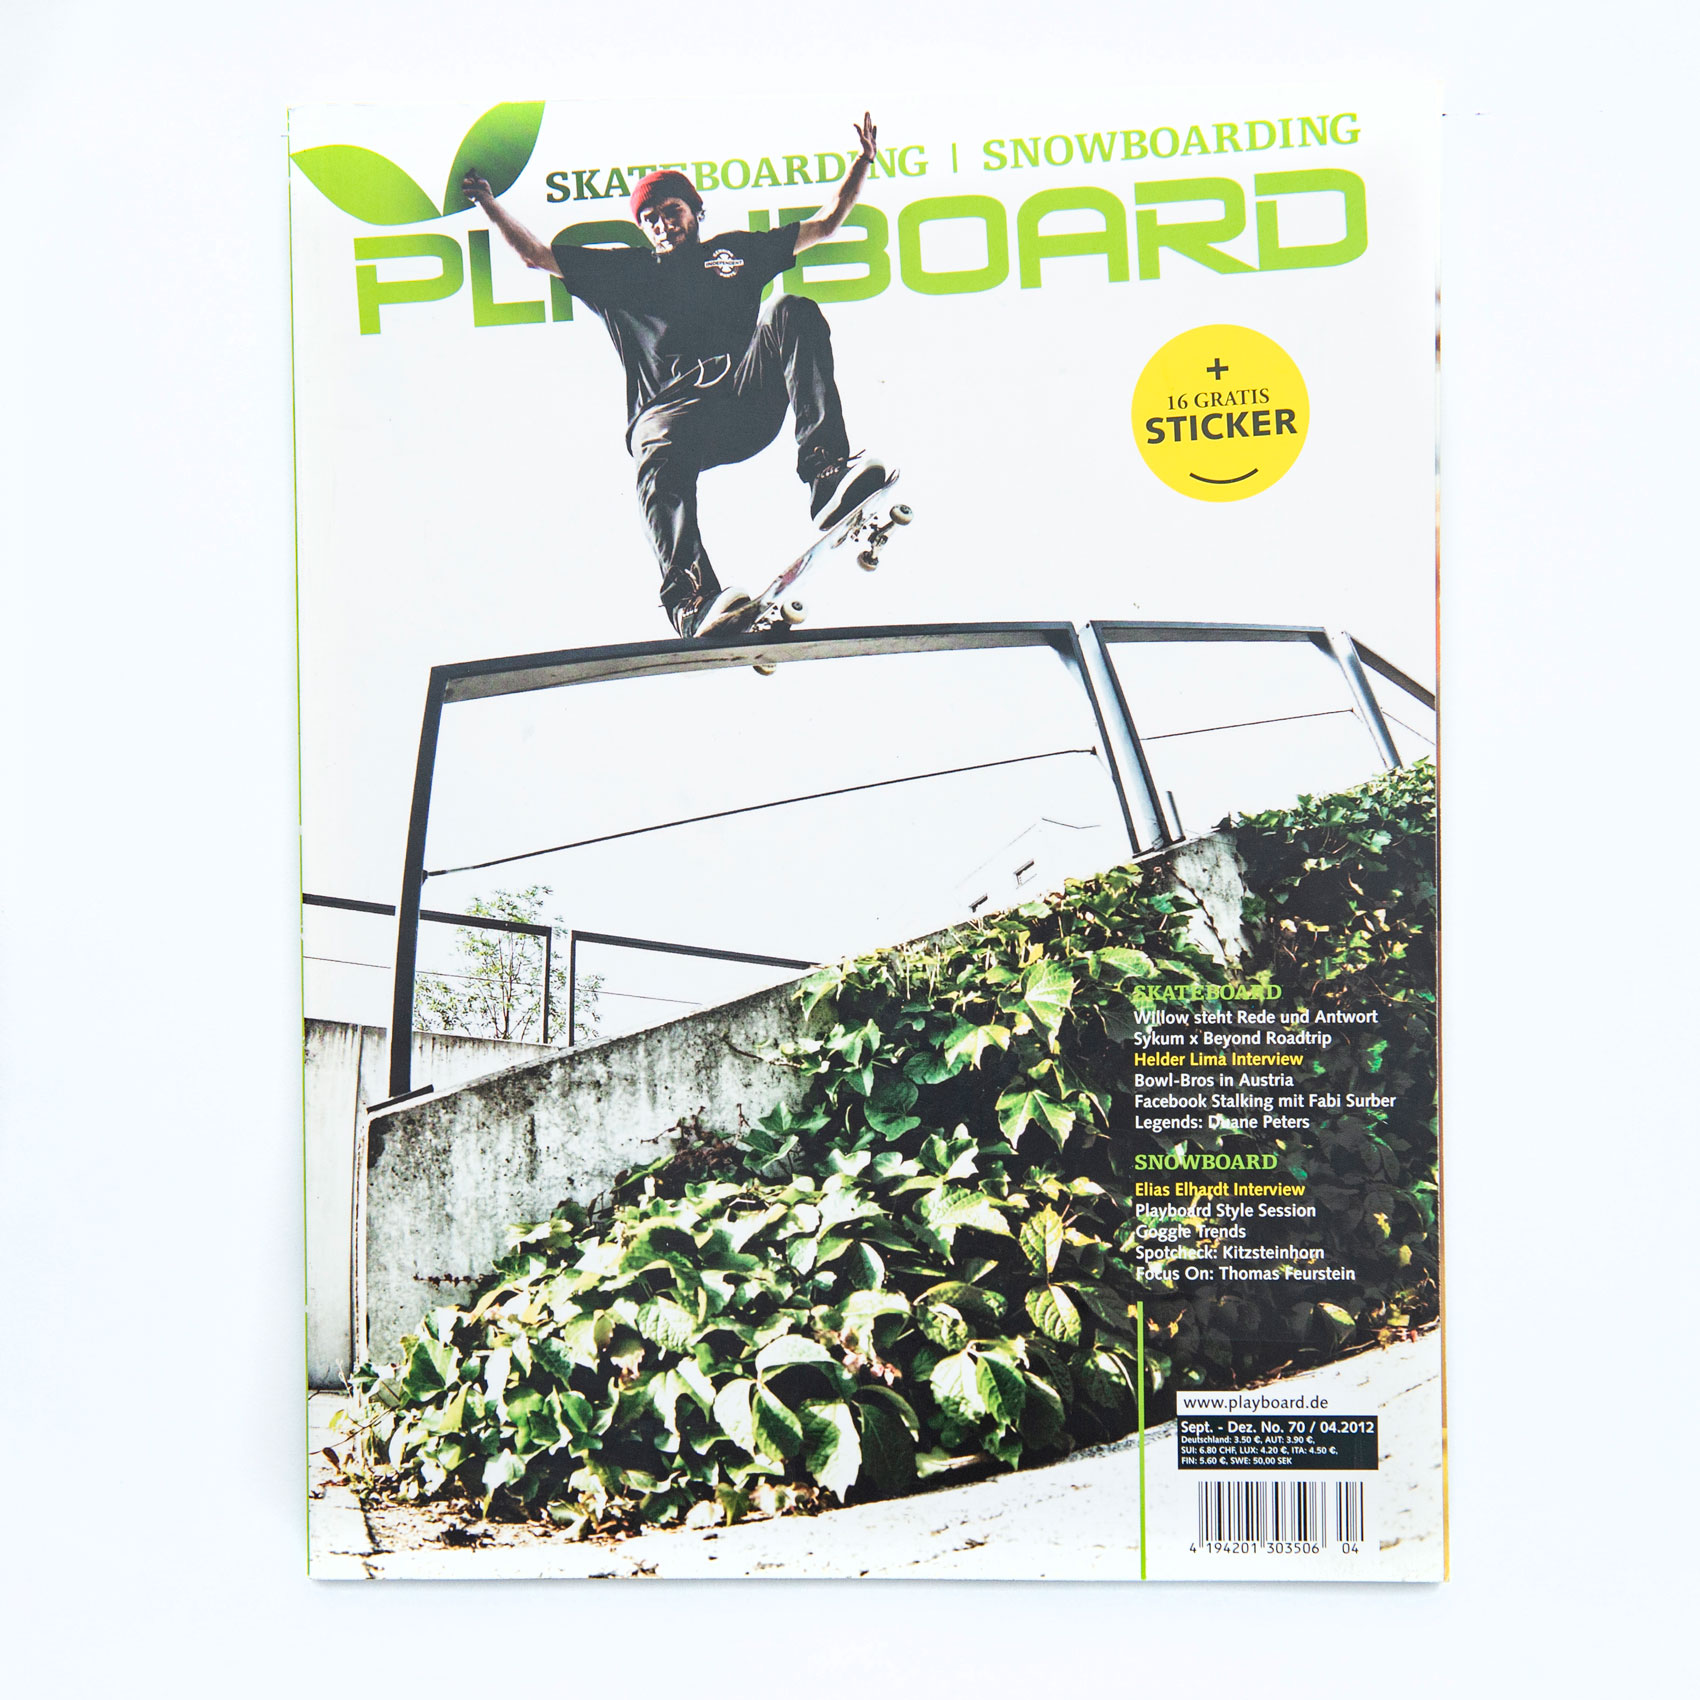 Tom Derichs, Nosegrind, Cover, Playboard, Willi Nothers